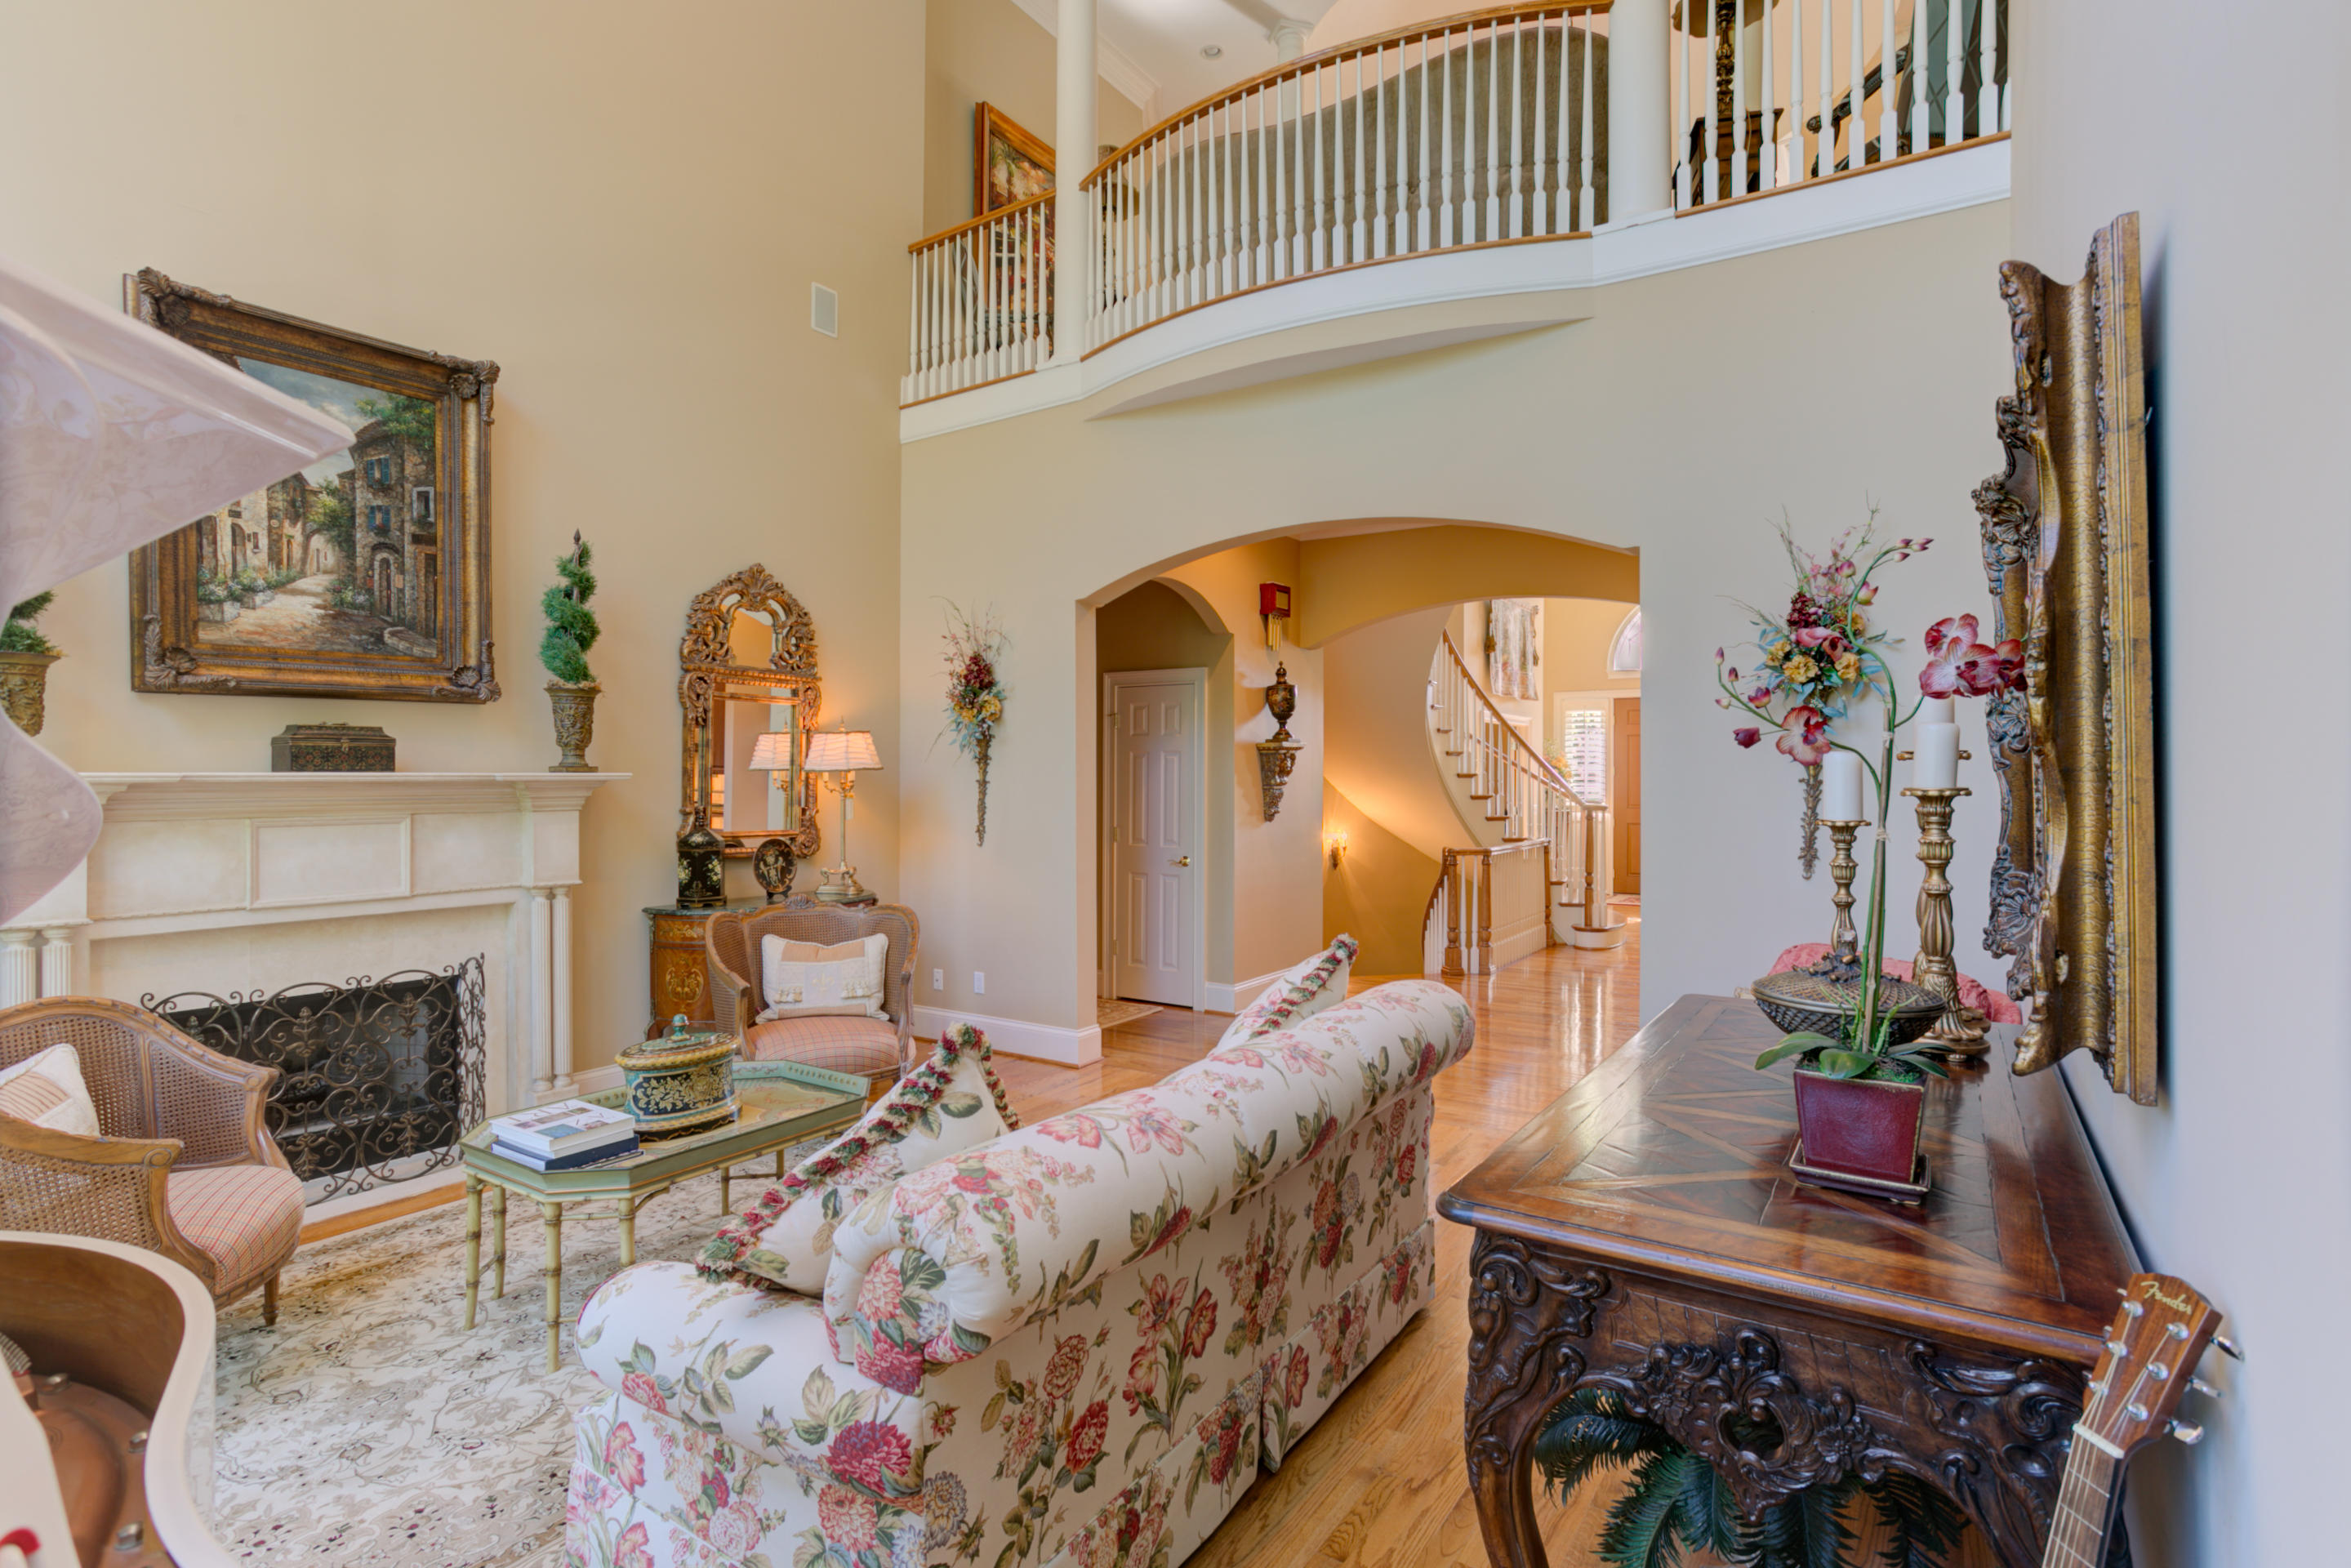 515 Gentlemens Ridge, Signal Mountain, TN 37377